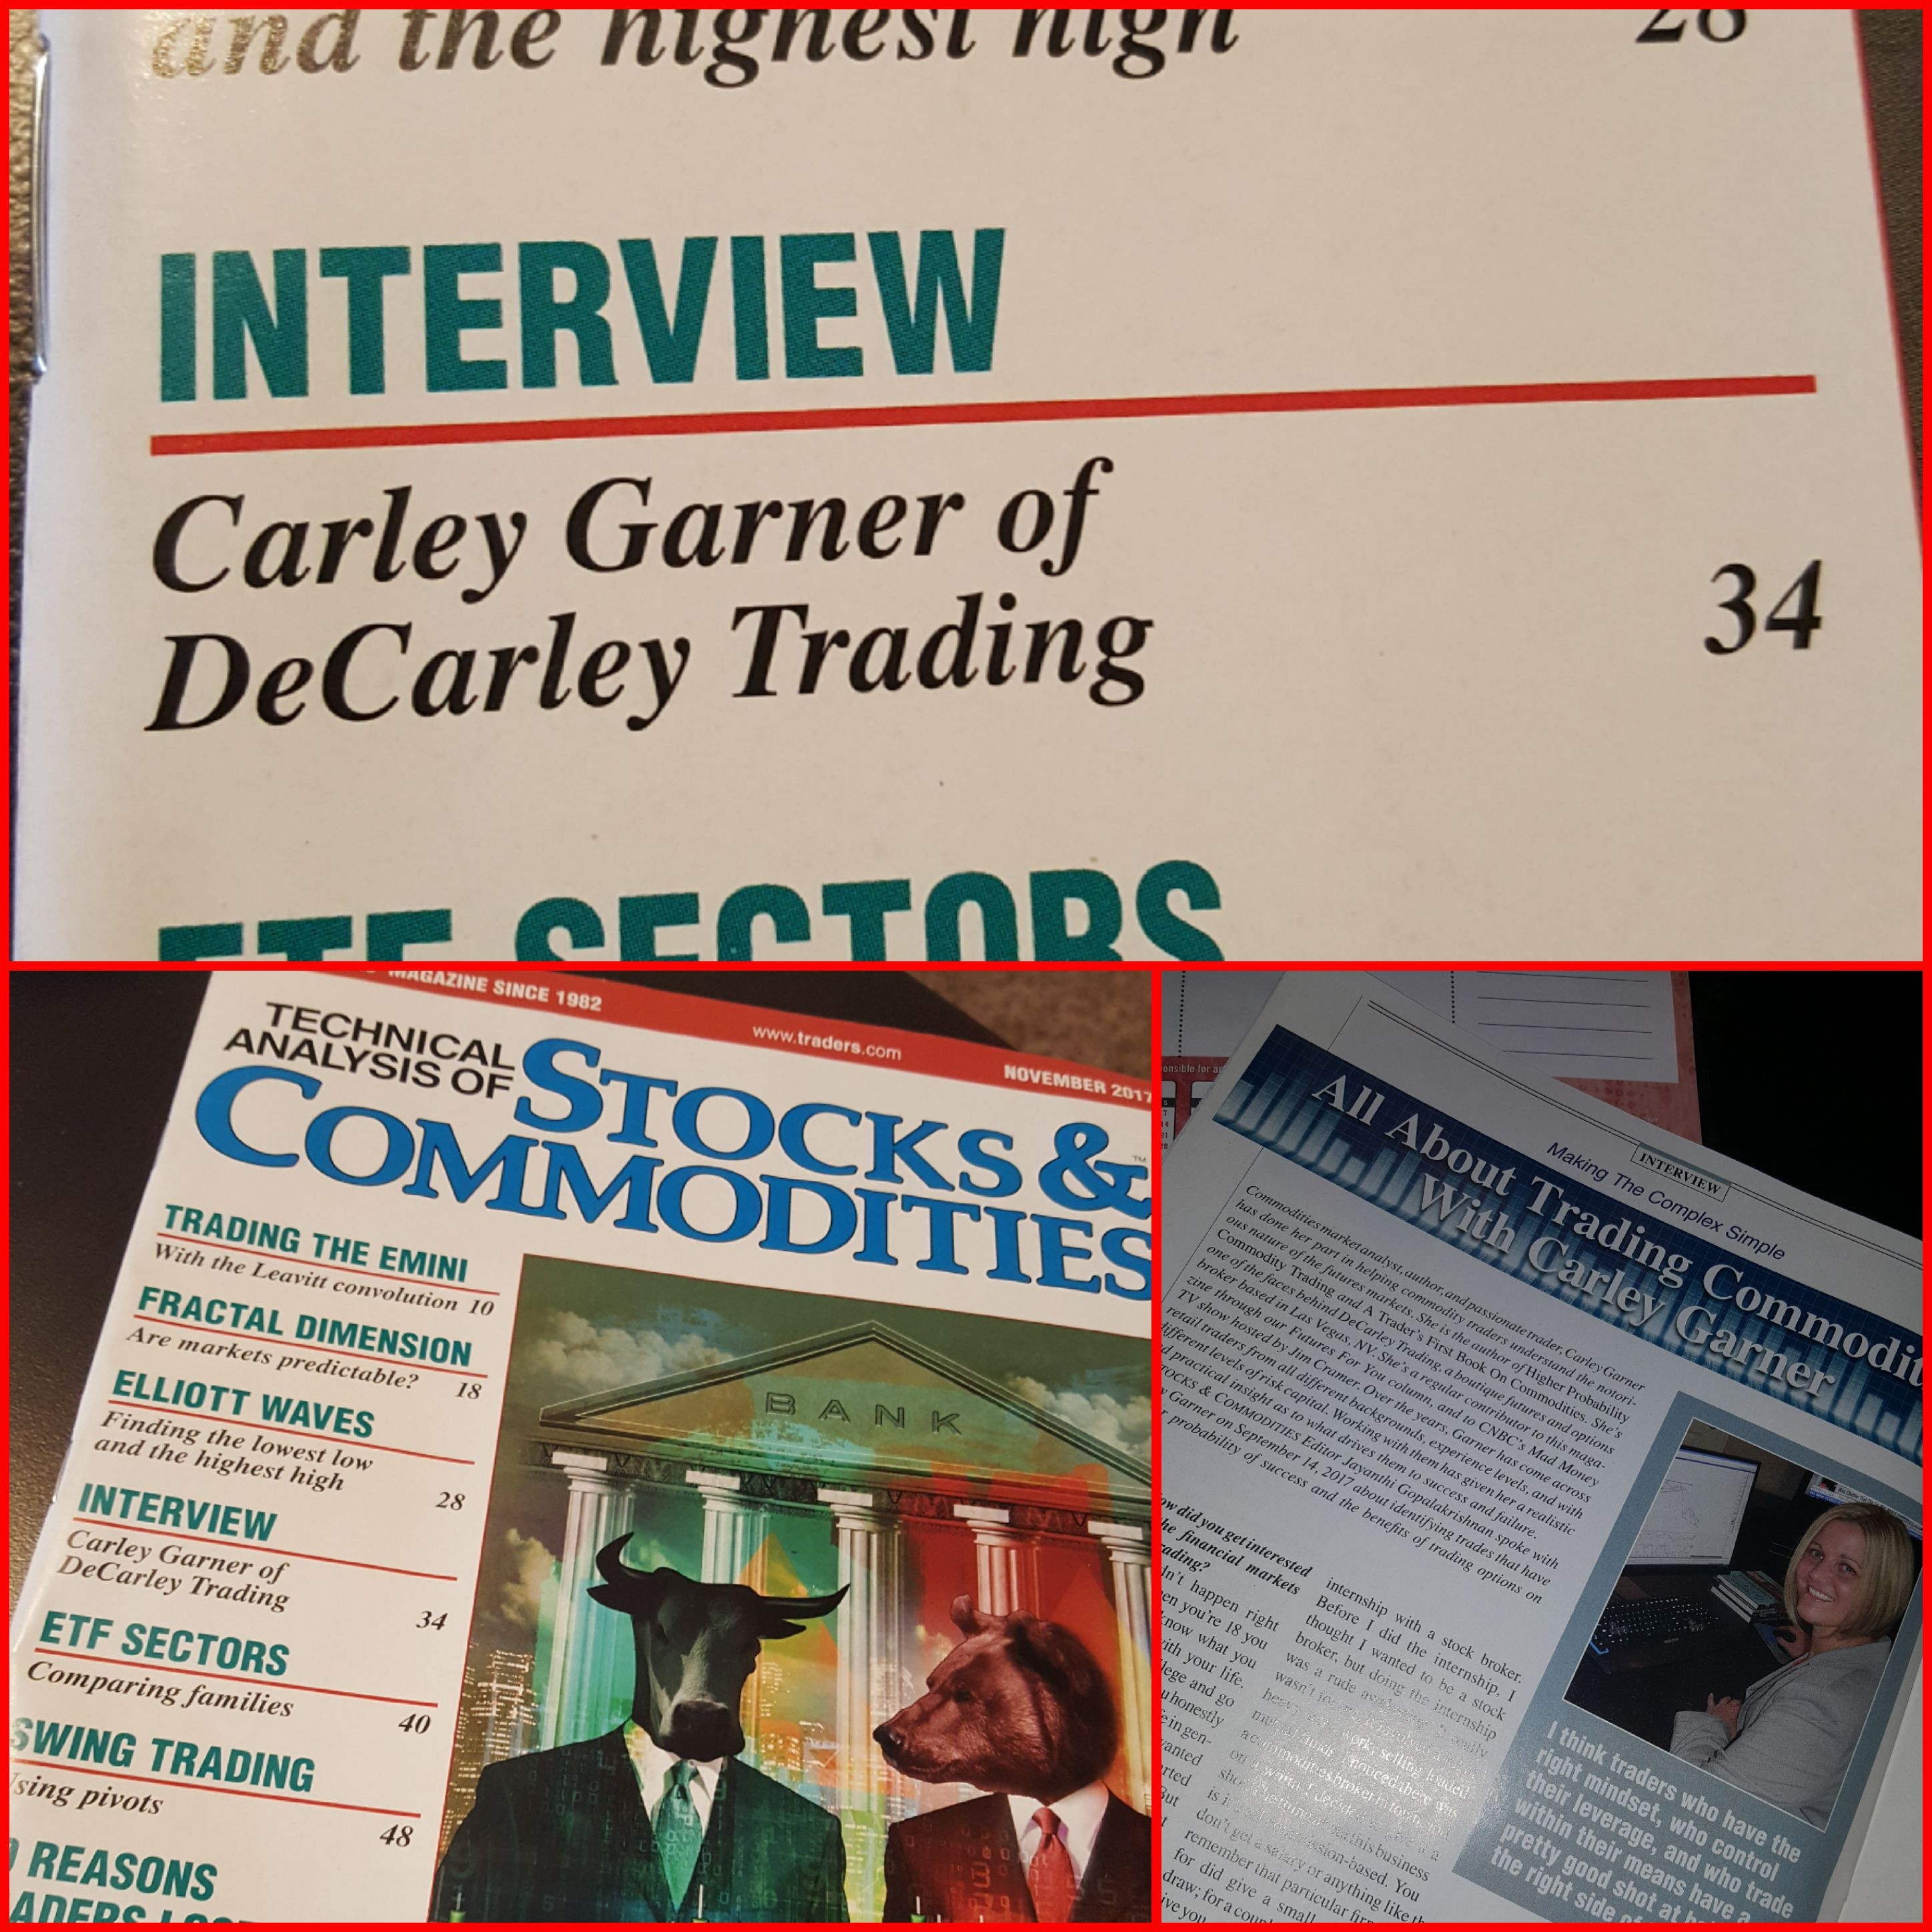 See futures broker, Carley Garner, in Technical Analysis of Stocks & Commodities magazine